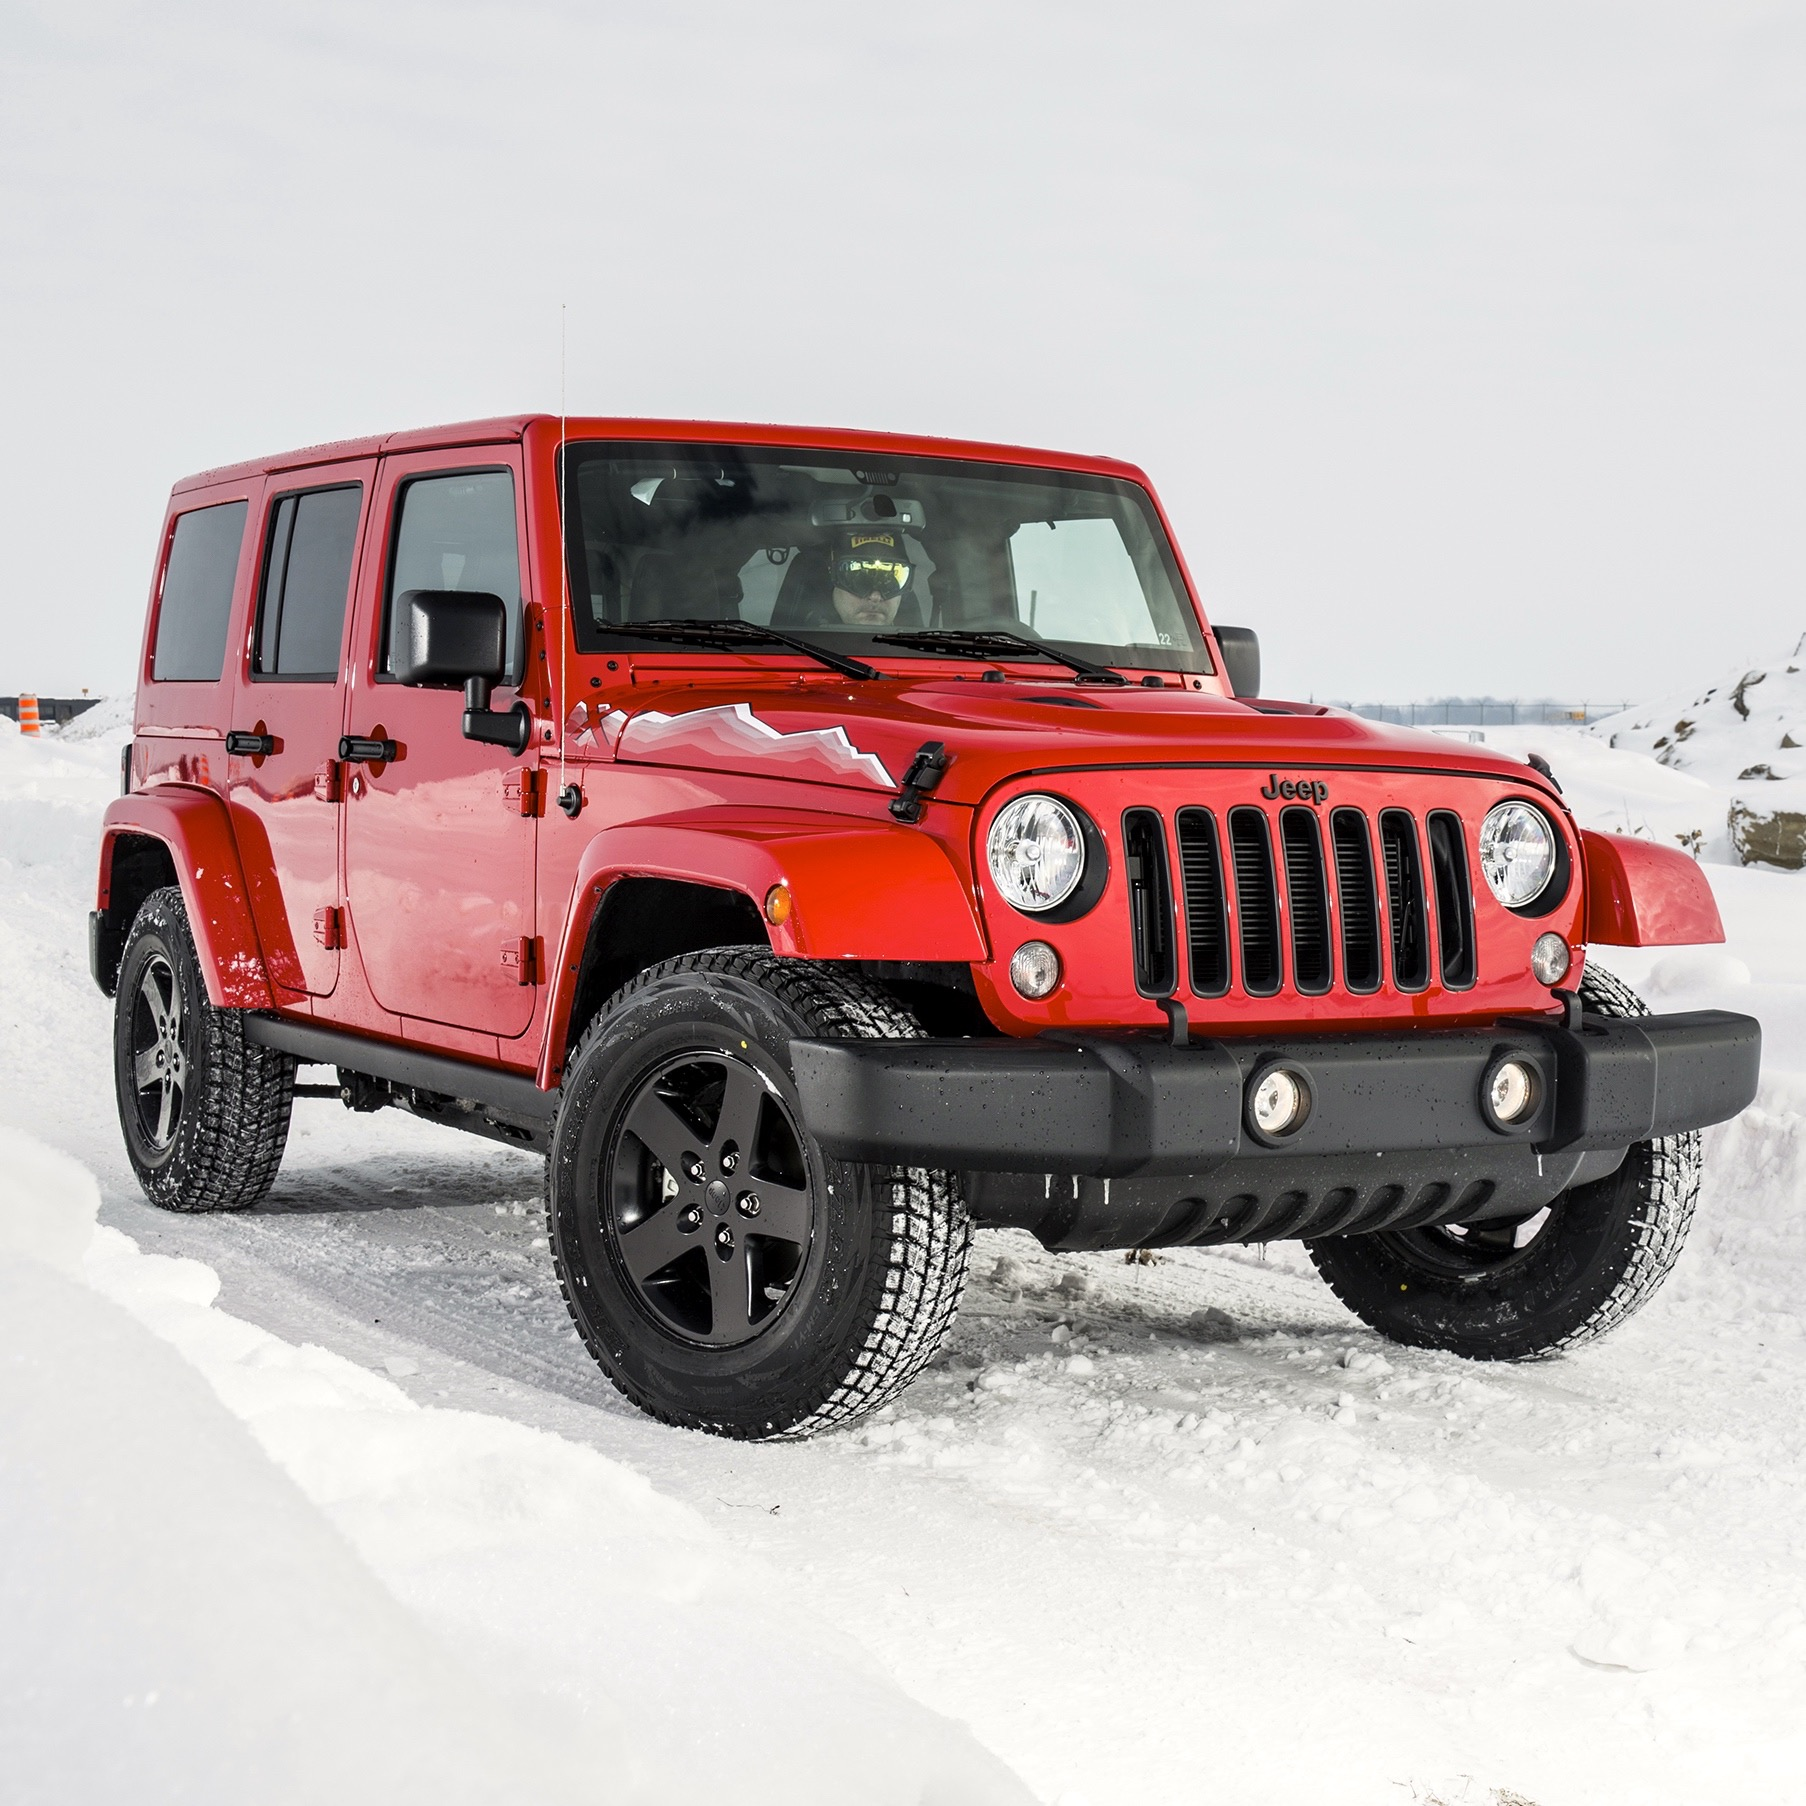 jeep-off-road-snow-02.jpg